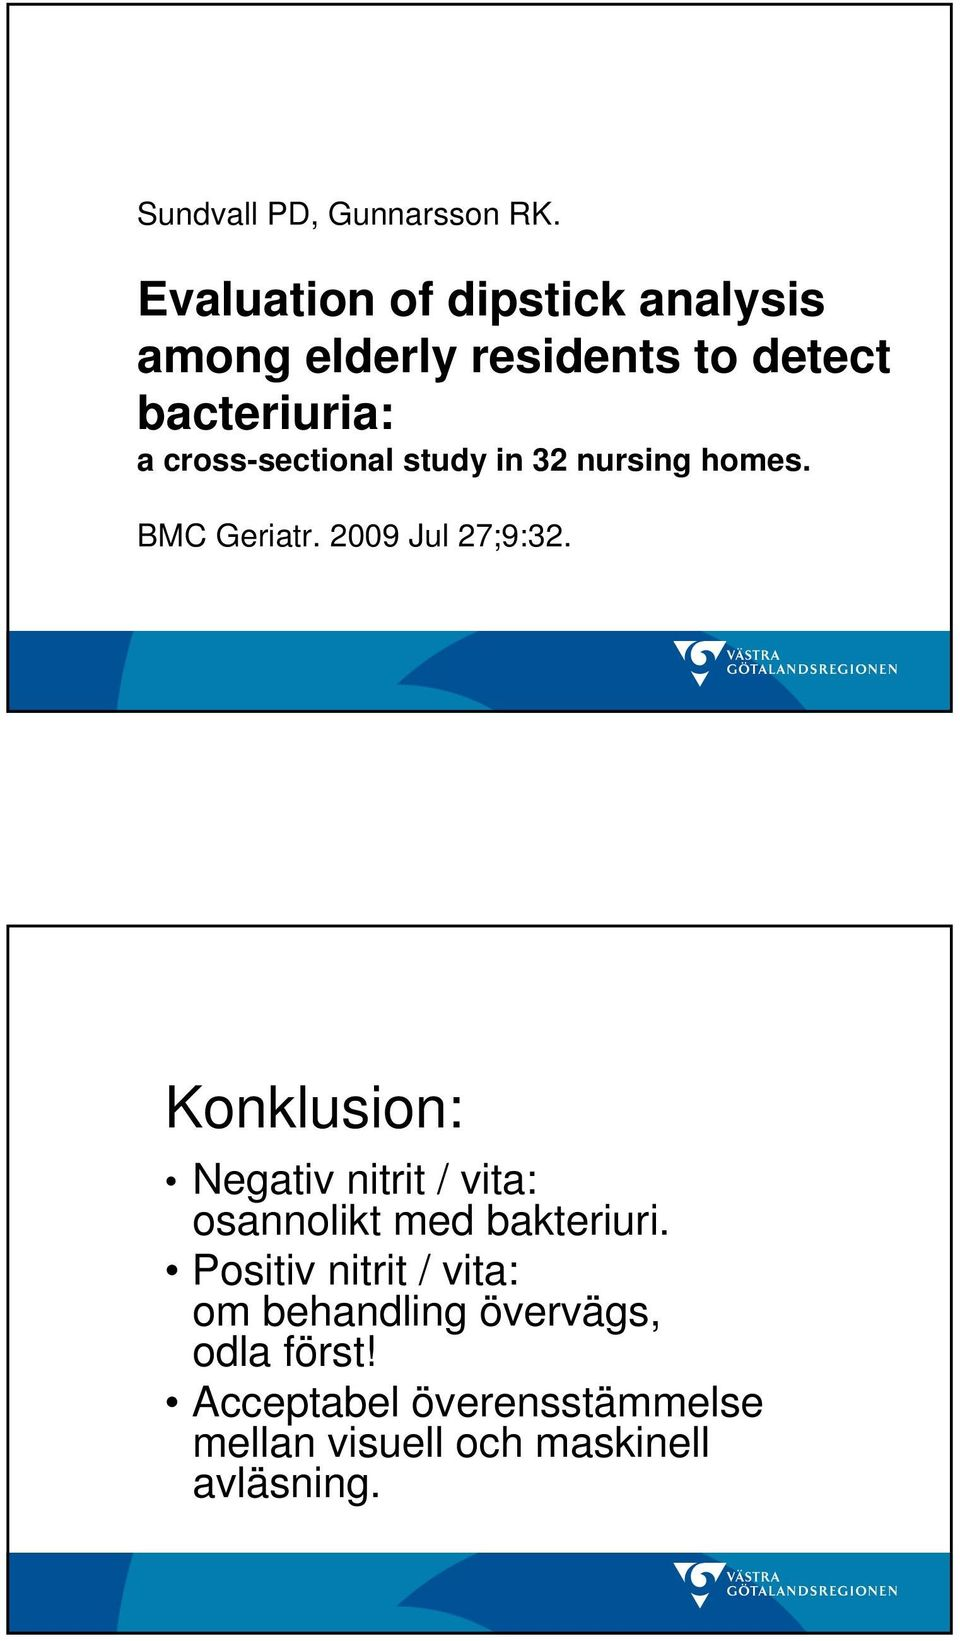 cross-sectional study in 32 nursing homes. BMC Geriatr. 2009 Jul 27;9:32.